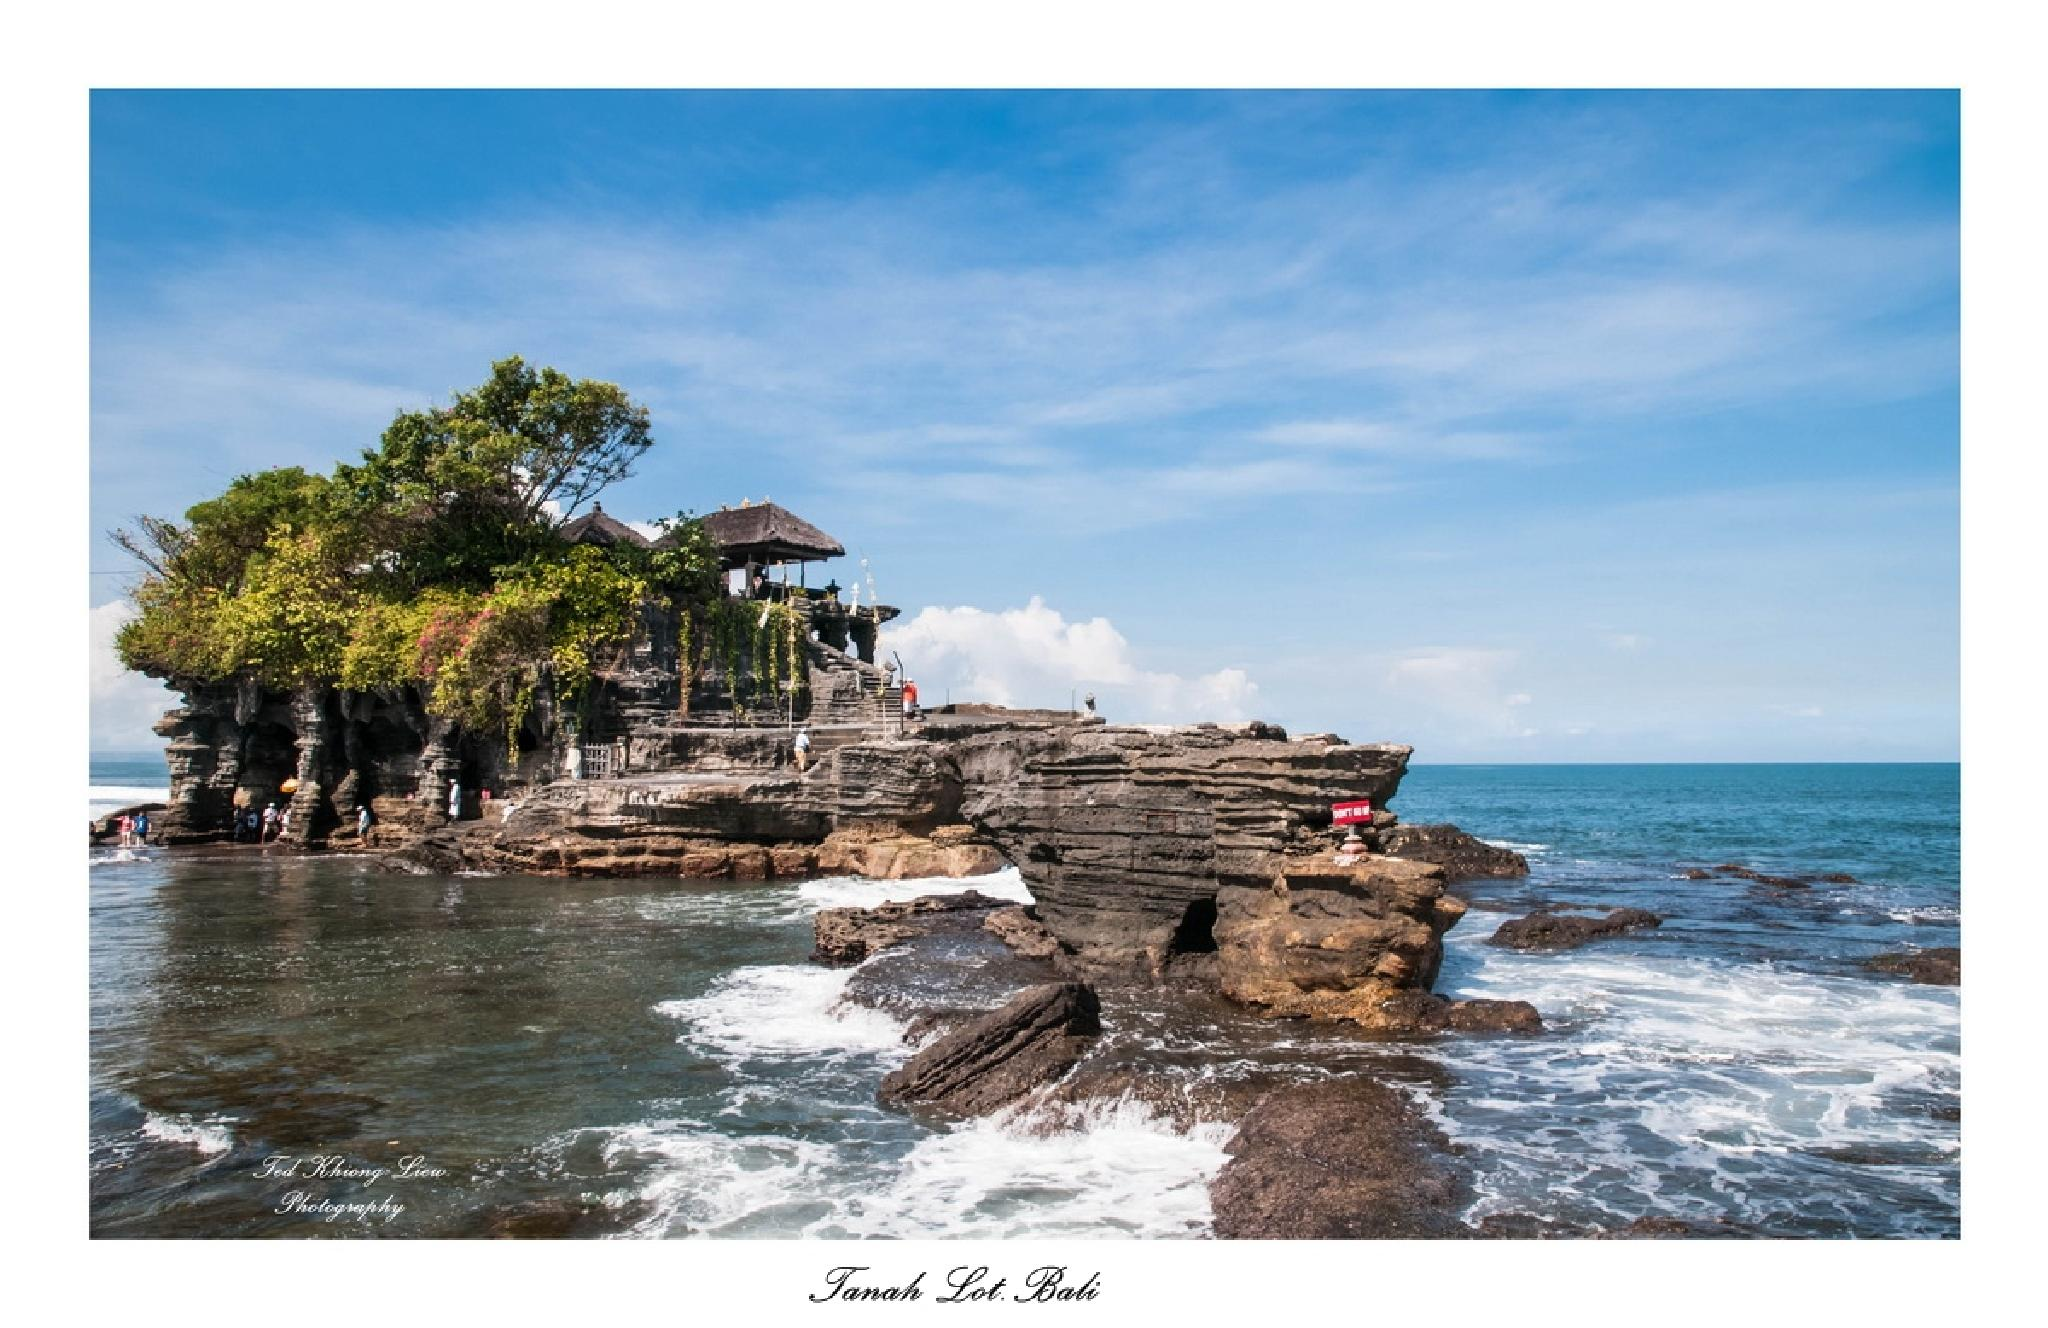 Tanah Lot,Bali by Jeffry Liew Ted Khiong